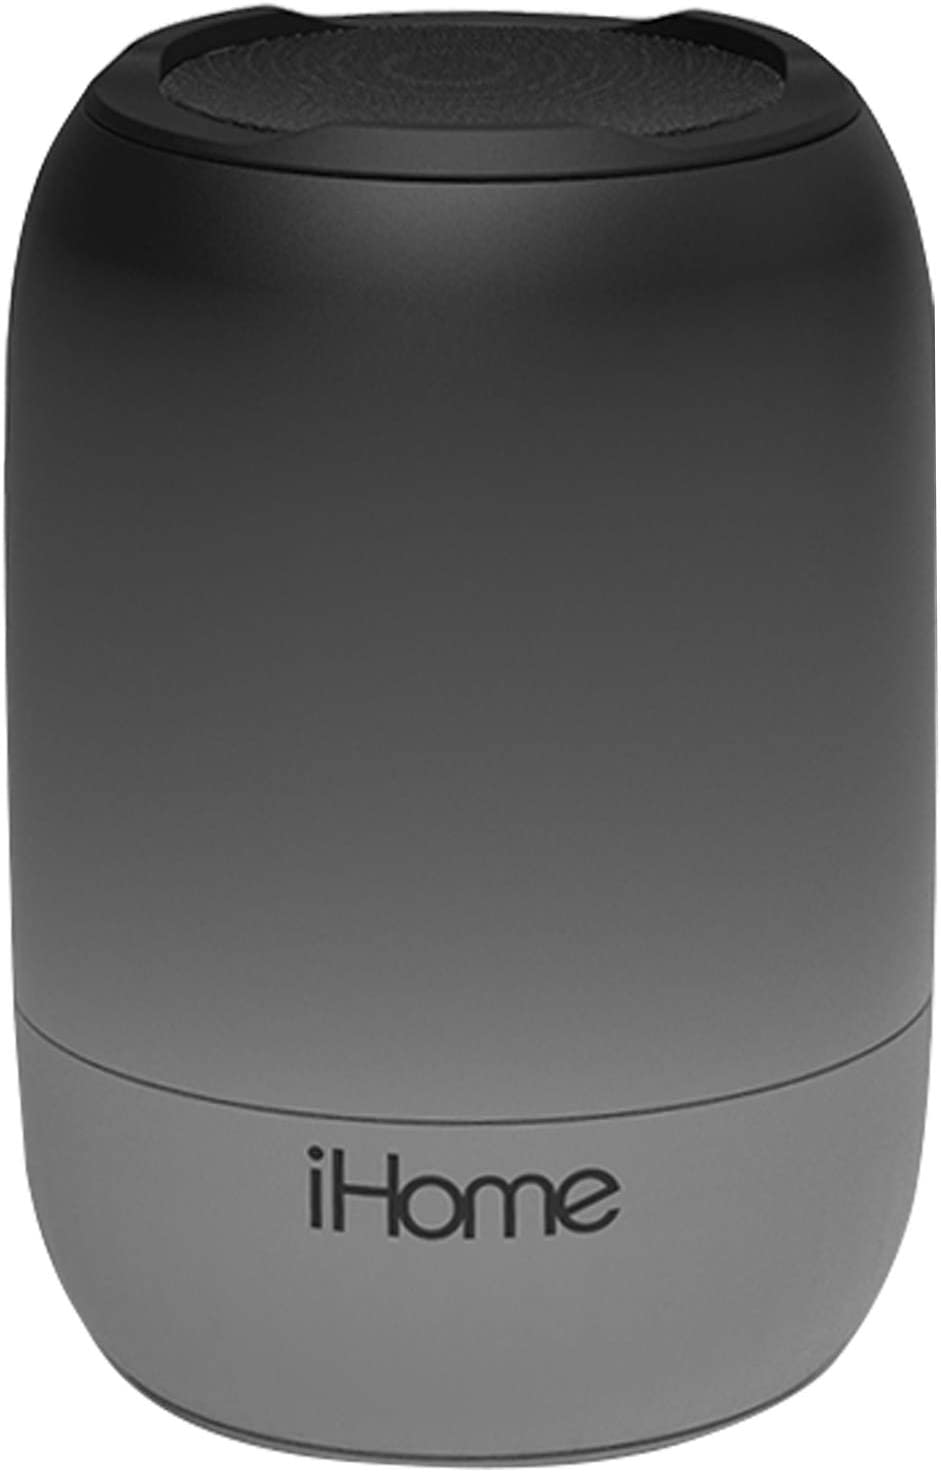 iHome PlayFade Portable Bluetooth Speaker - Water-Resistant Rechargeable Audio Device for Outdoor Events, Pool Party, Beach, Camping (Model iBT400B) Black